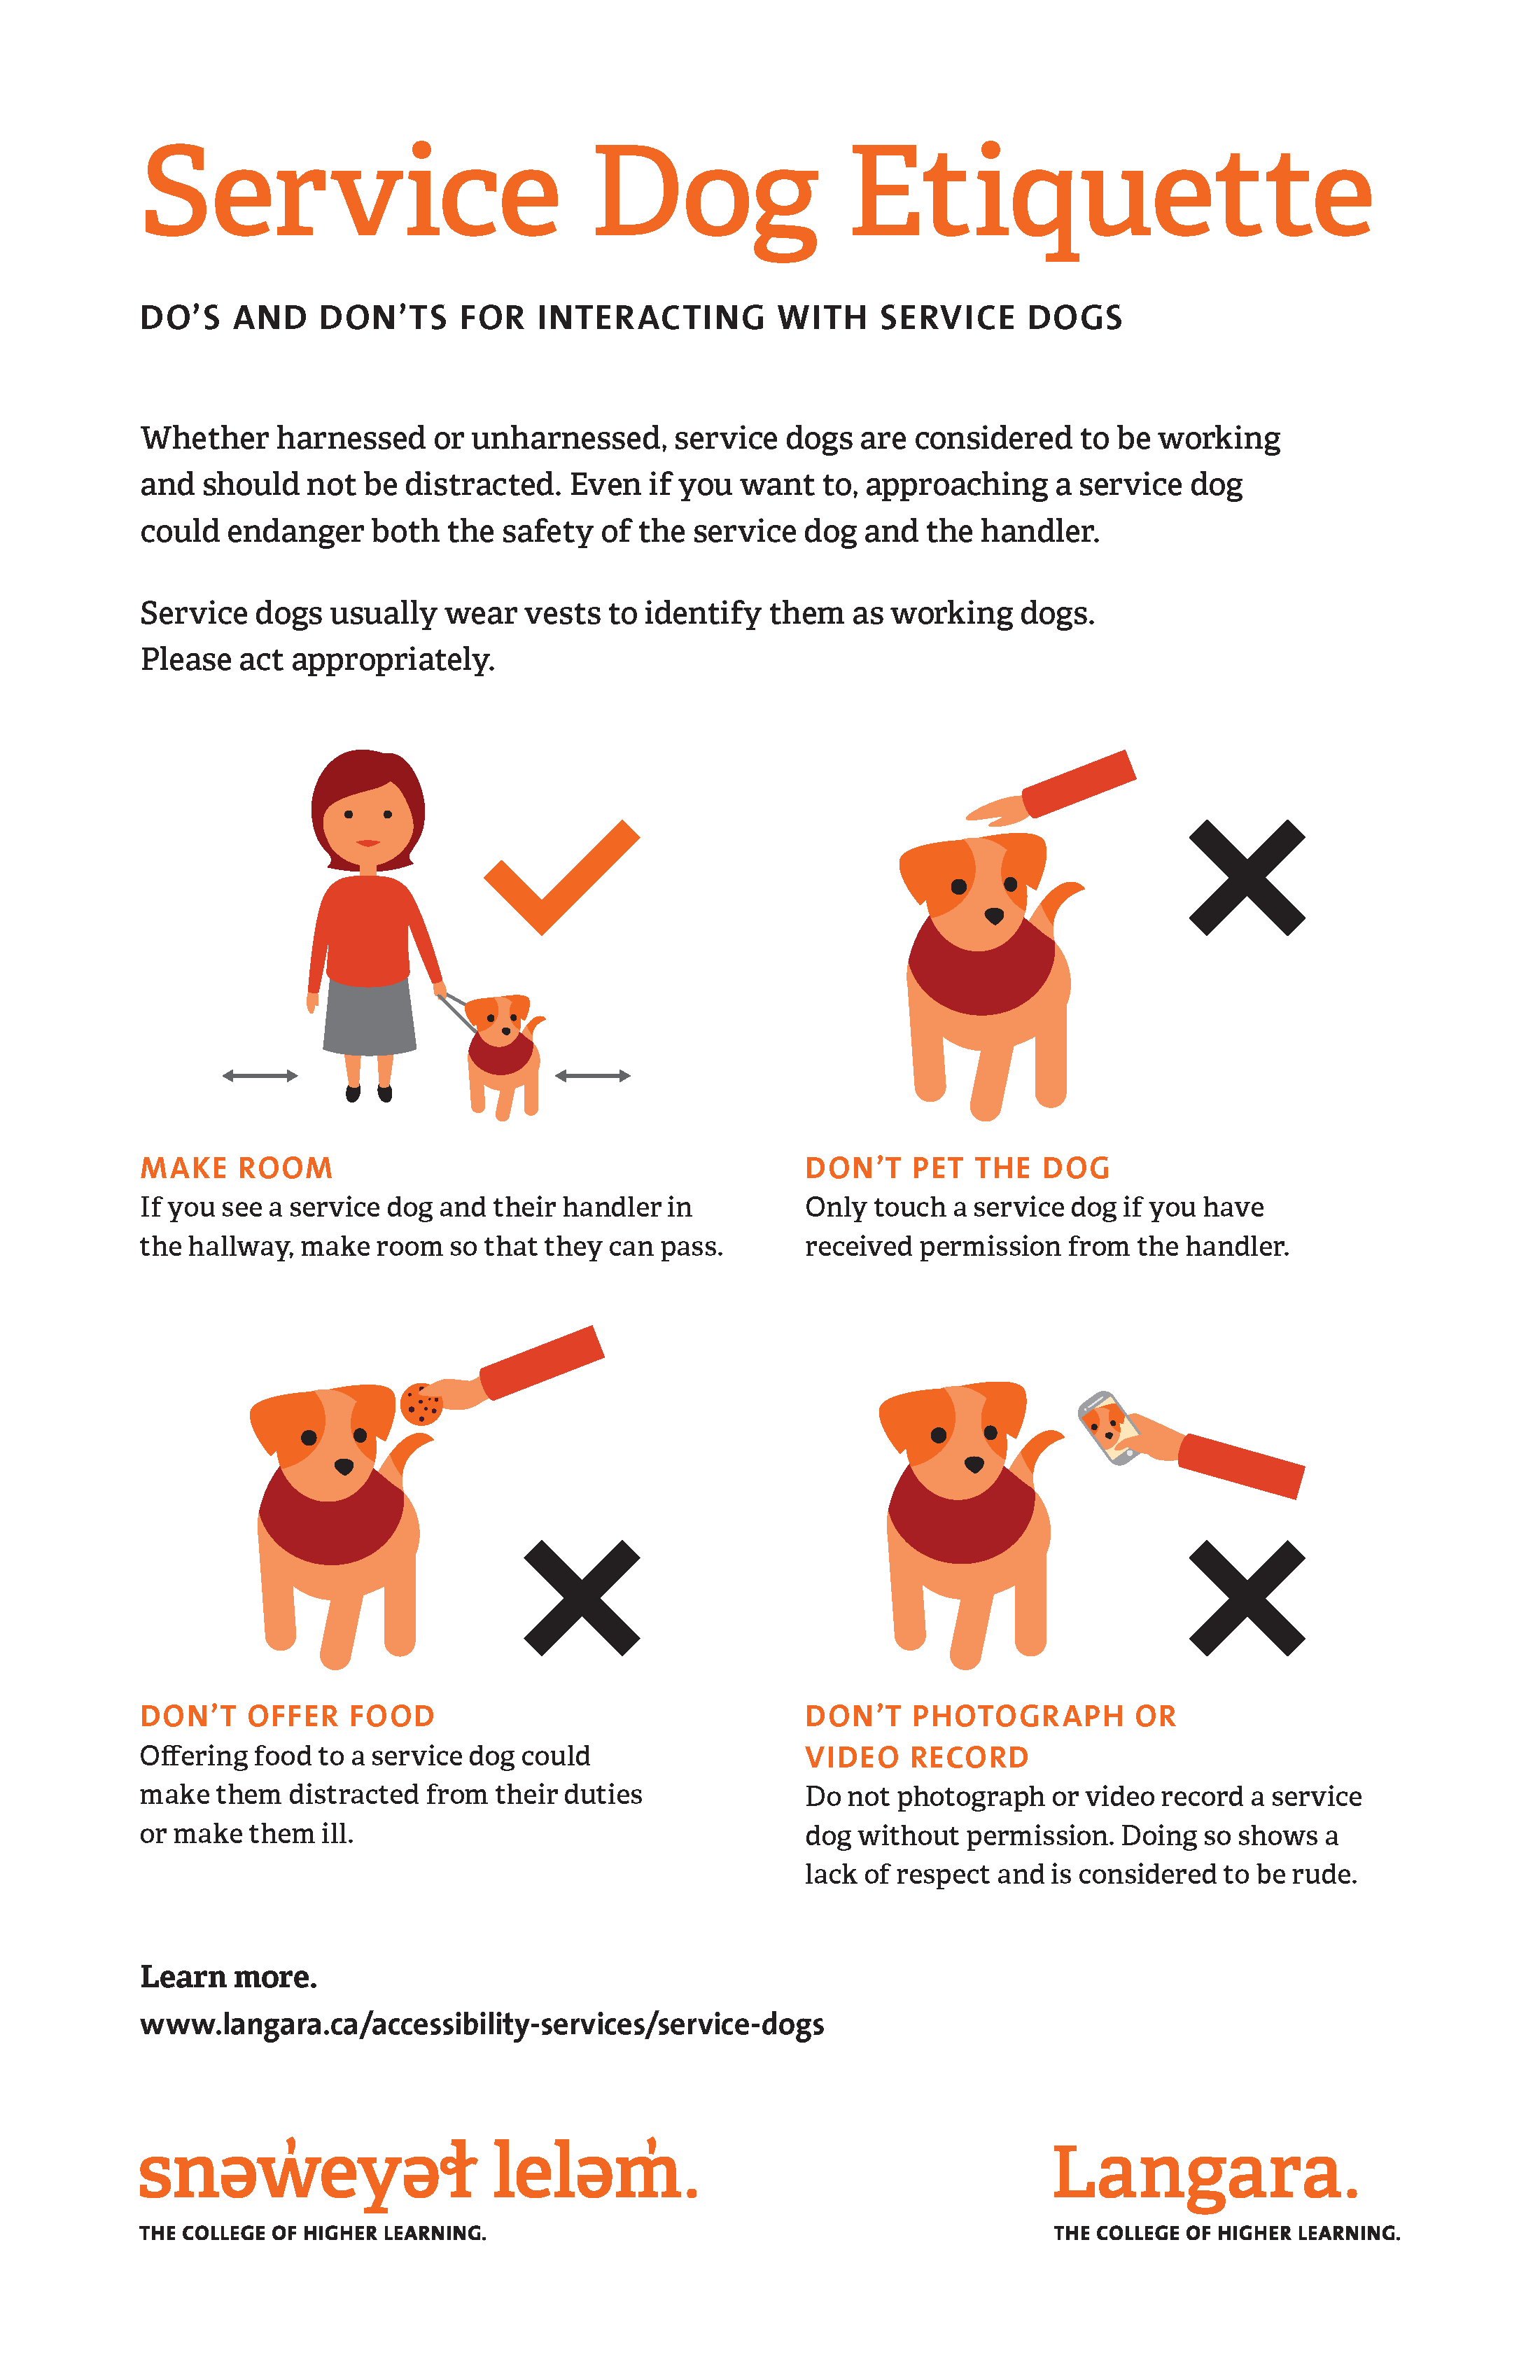 Some do's and don'ts for interacting with service dogs include making room for the service dog and handler in the hallway, don't pet the service dog unless you have received permission from the handler, don't offer food to the service dog, and don't photograph or video record the service dog without permission.